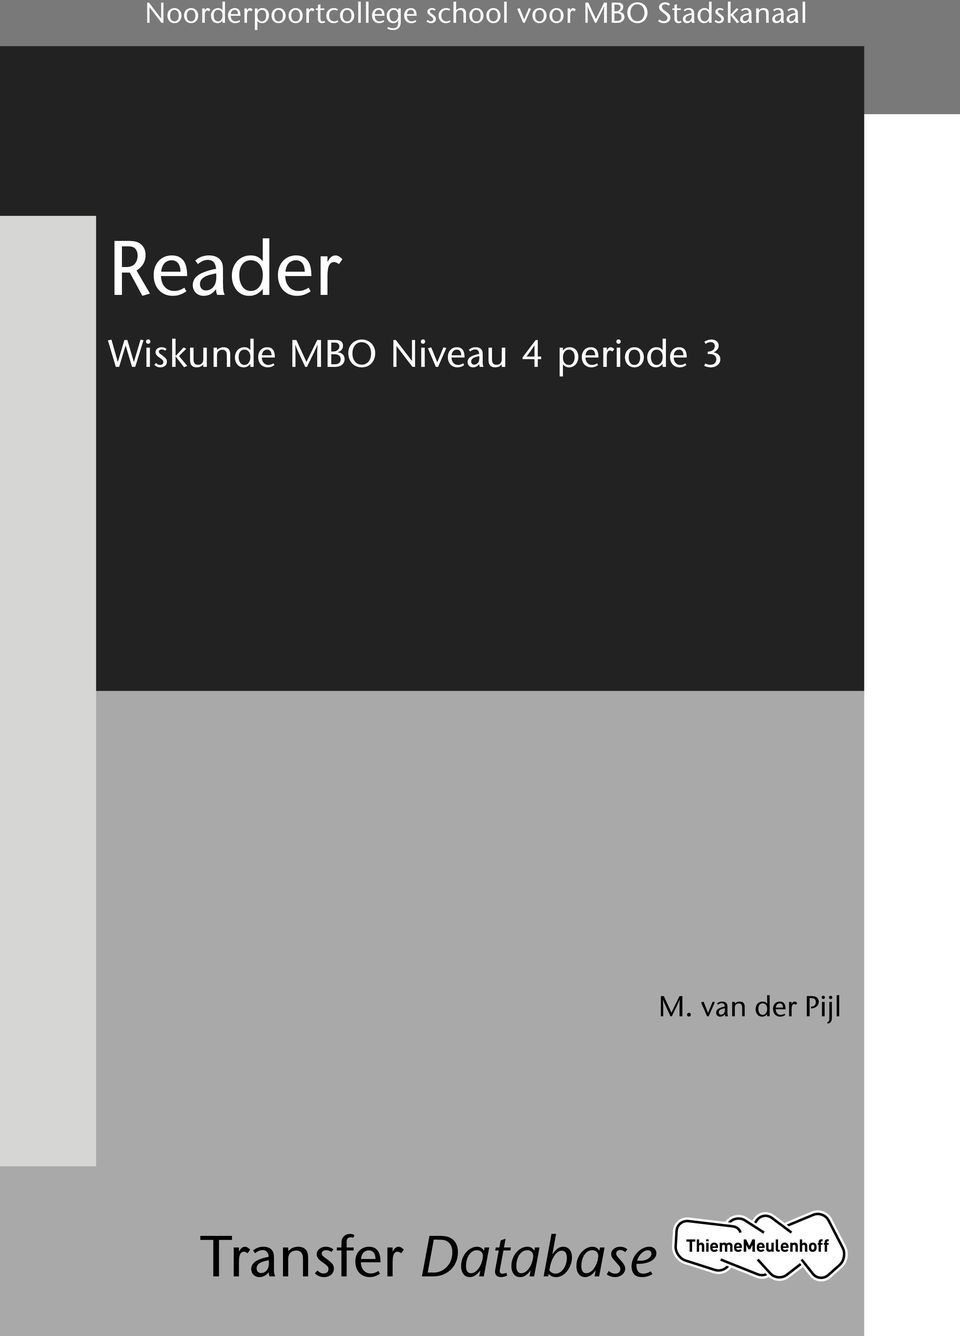 Wiskunde MBO Niveau 4 periode